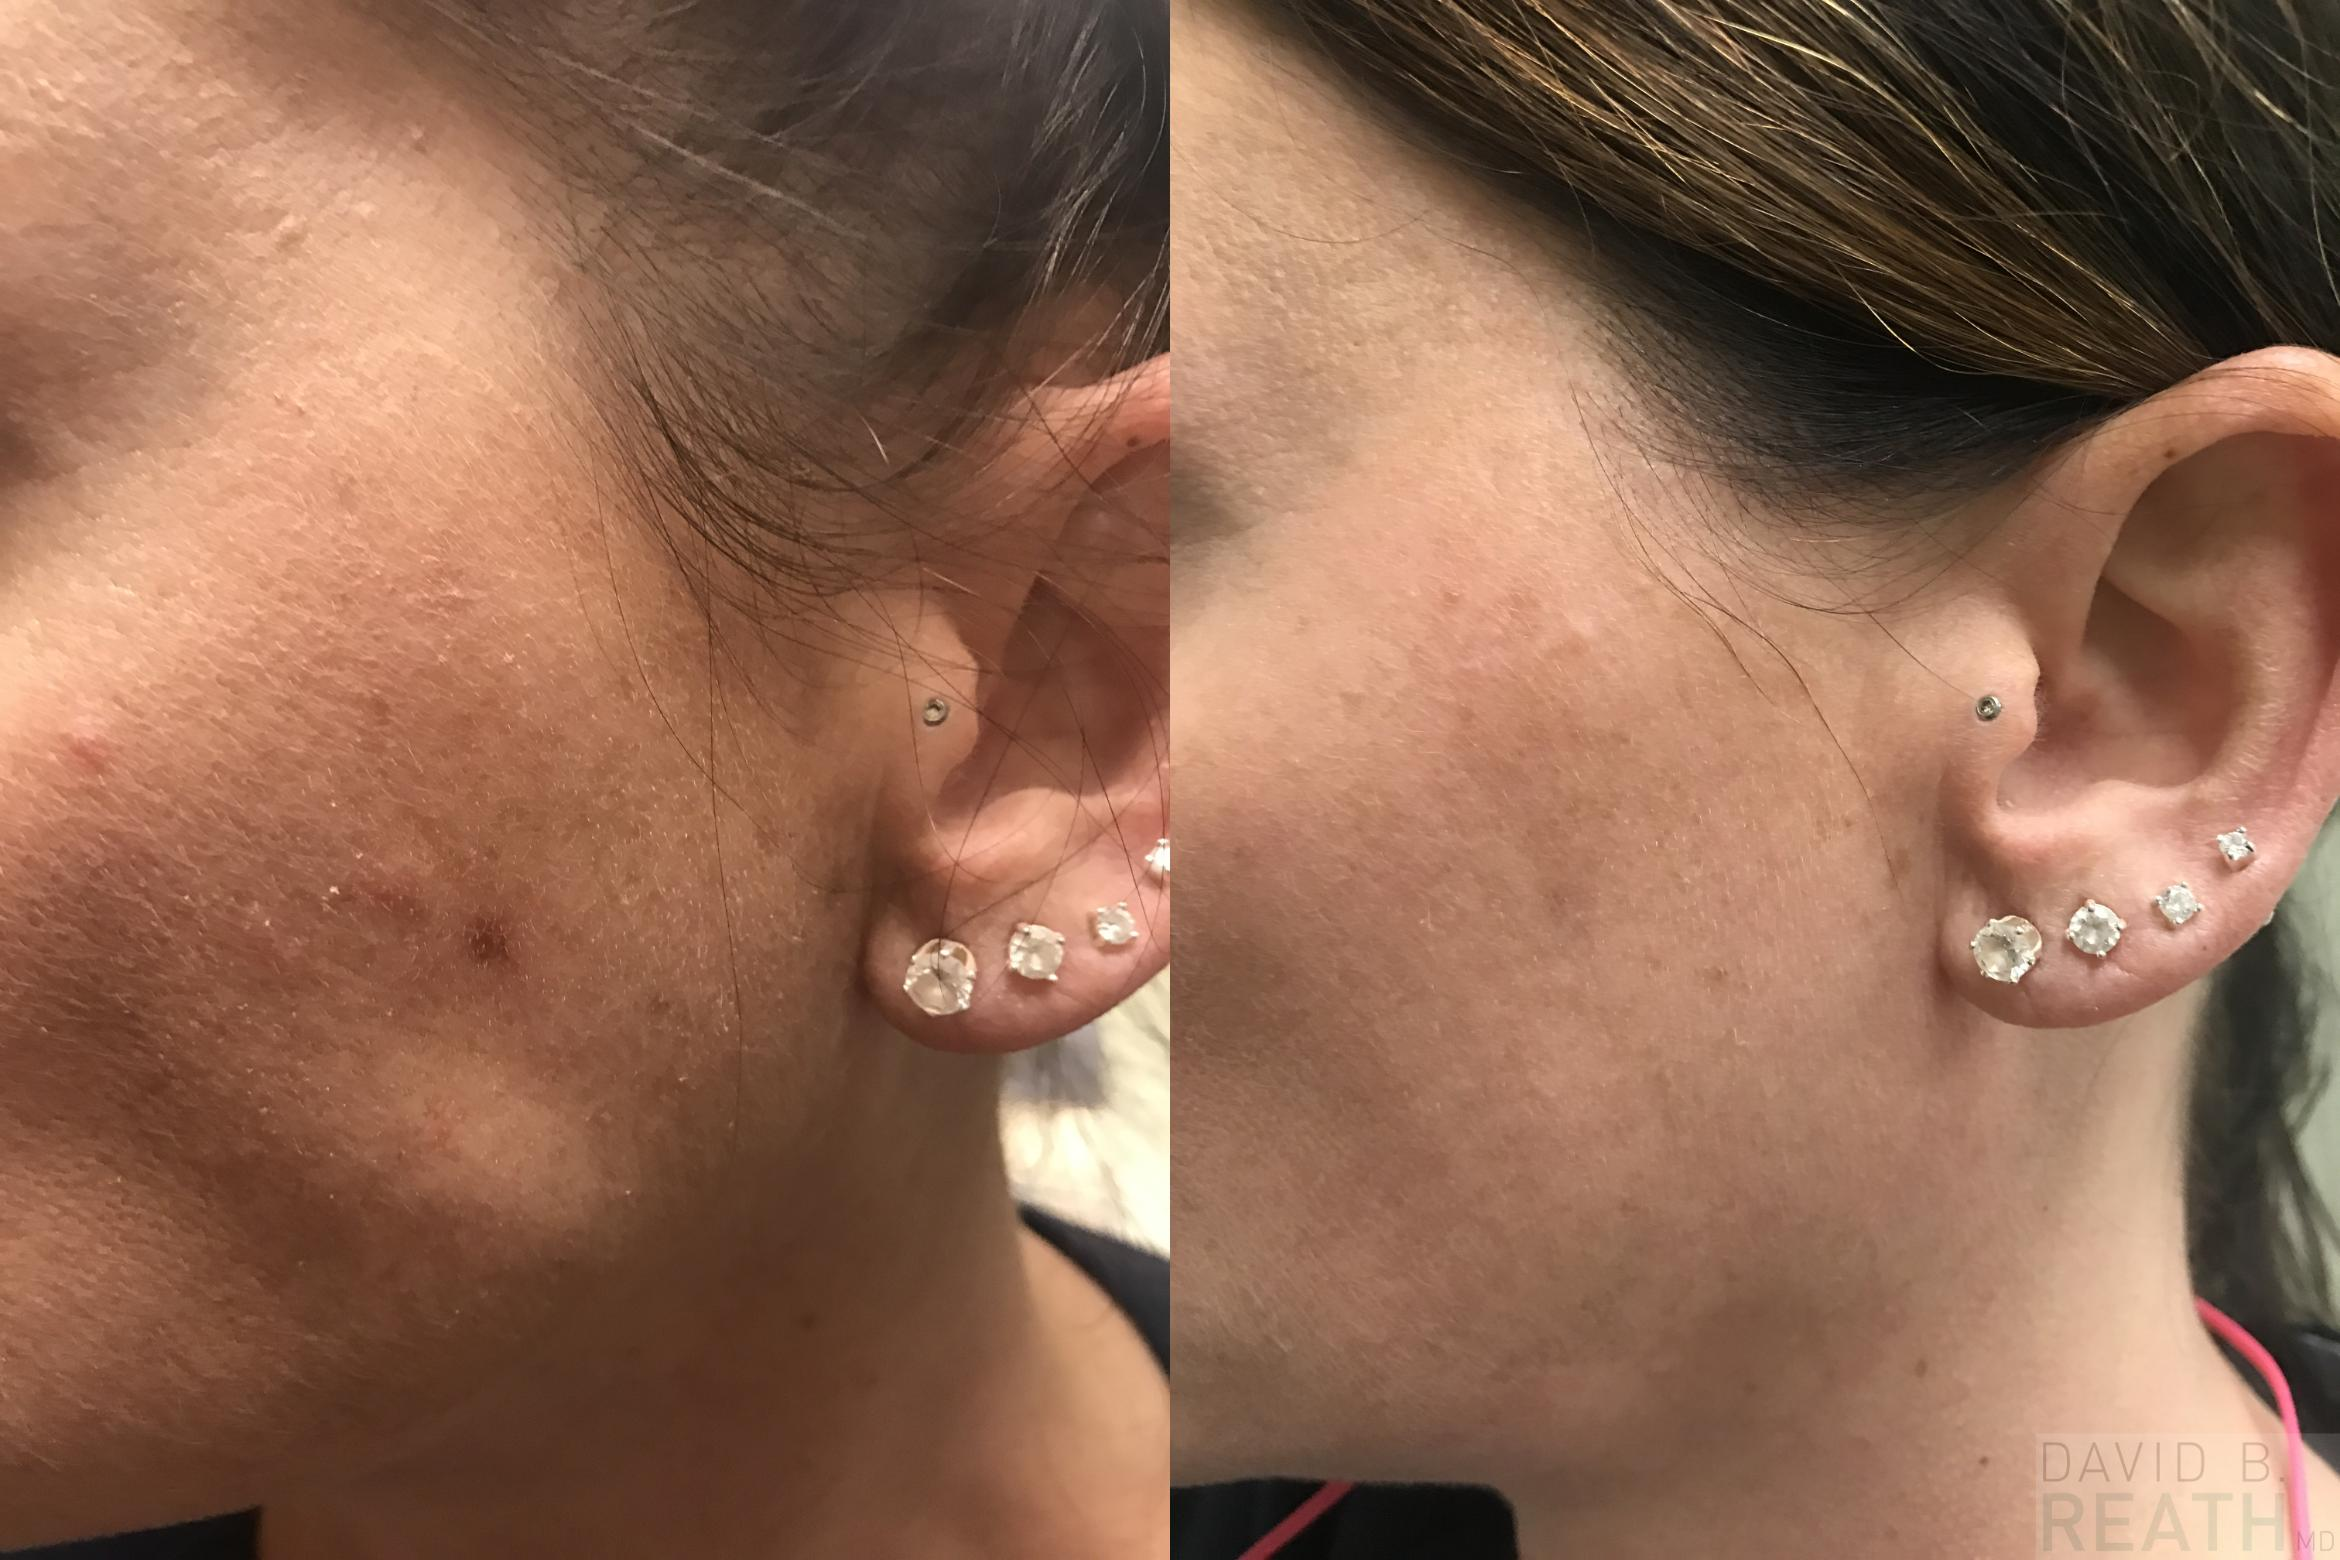 CryoCorrect Before & After Photo | Knoxville, Tennessee | David B. Reath, MD